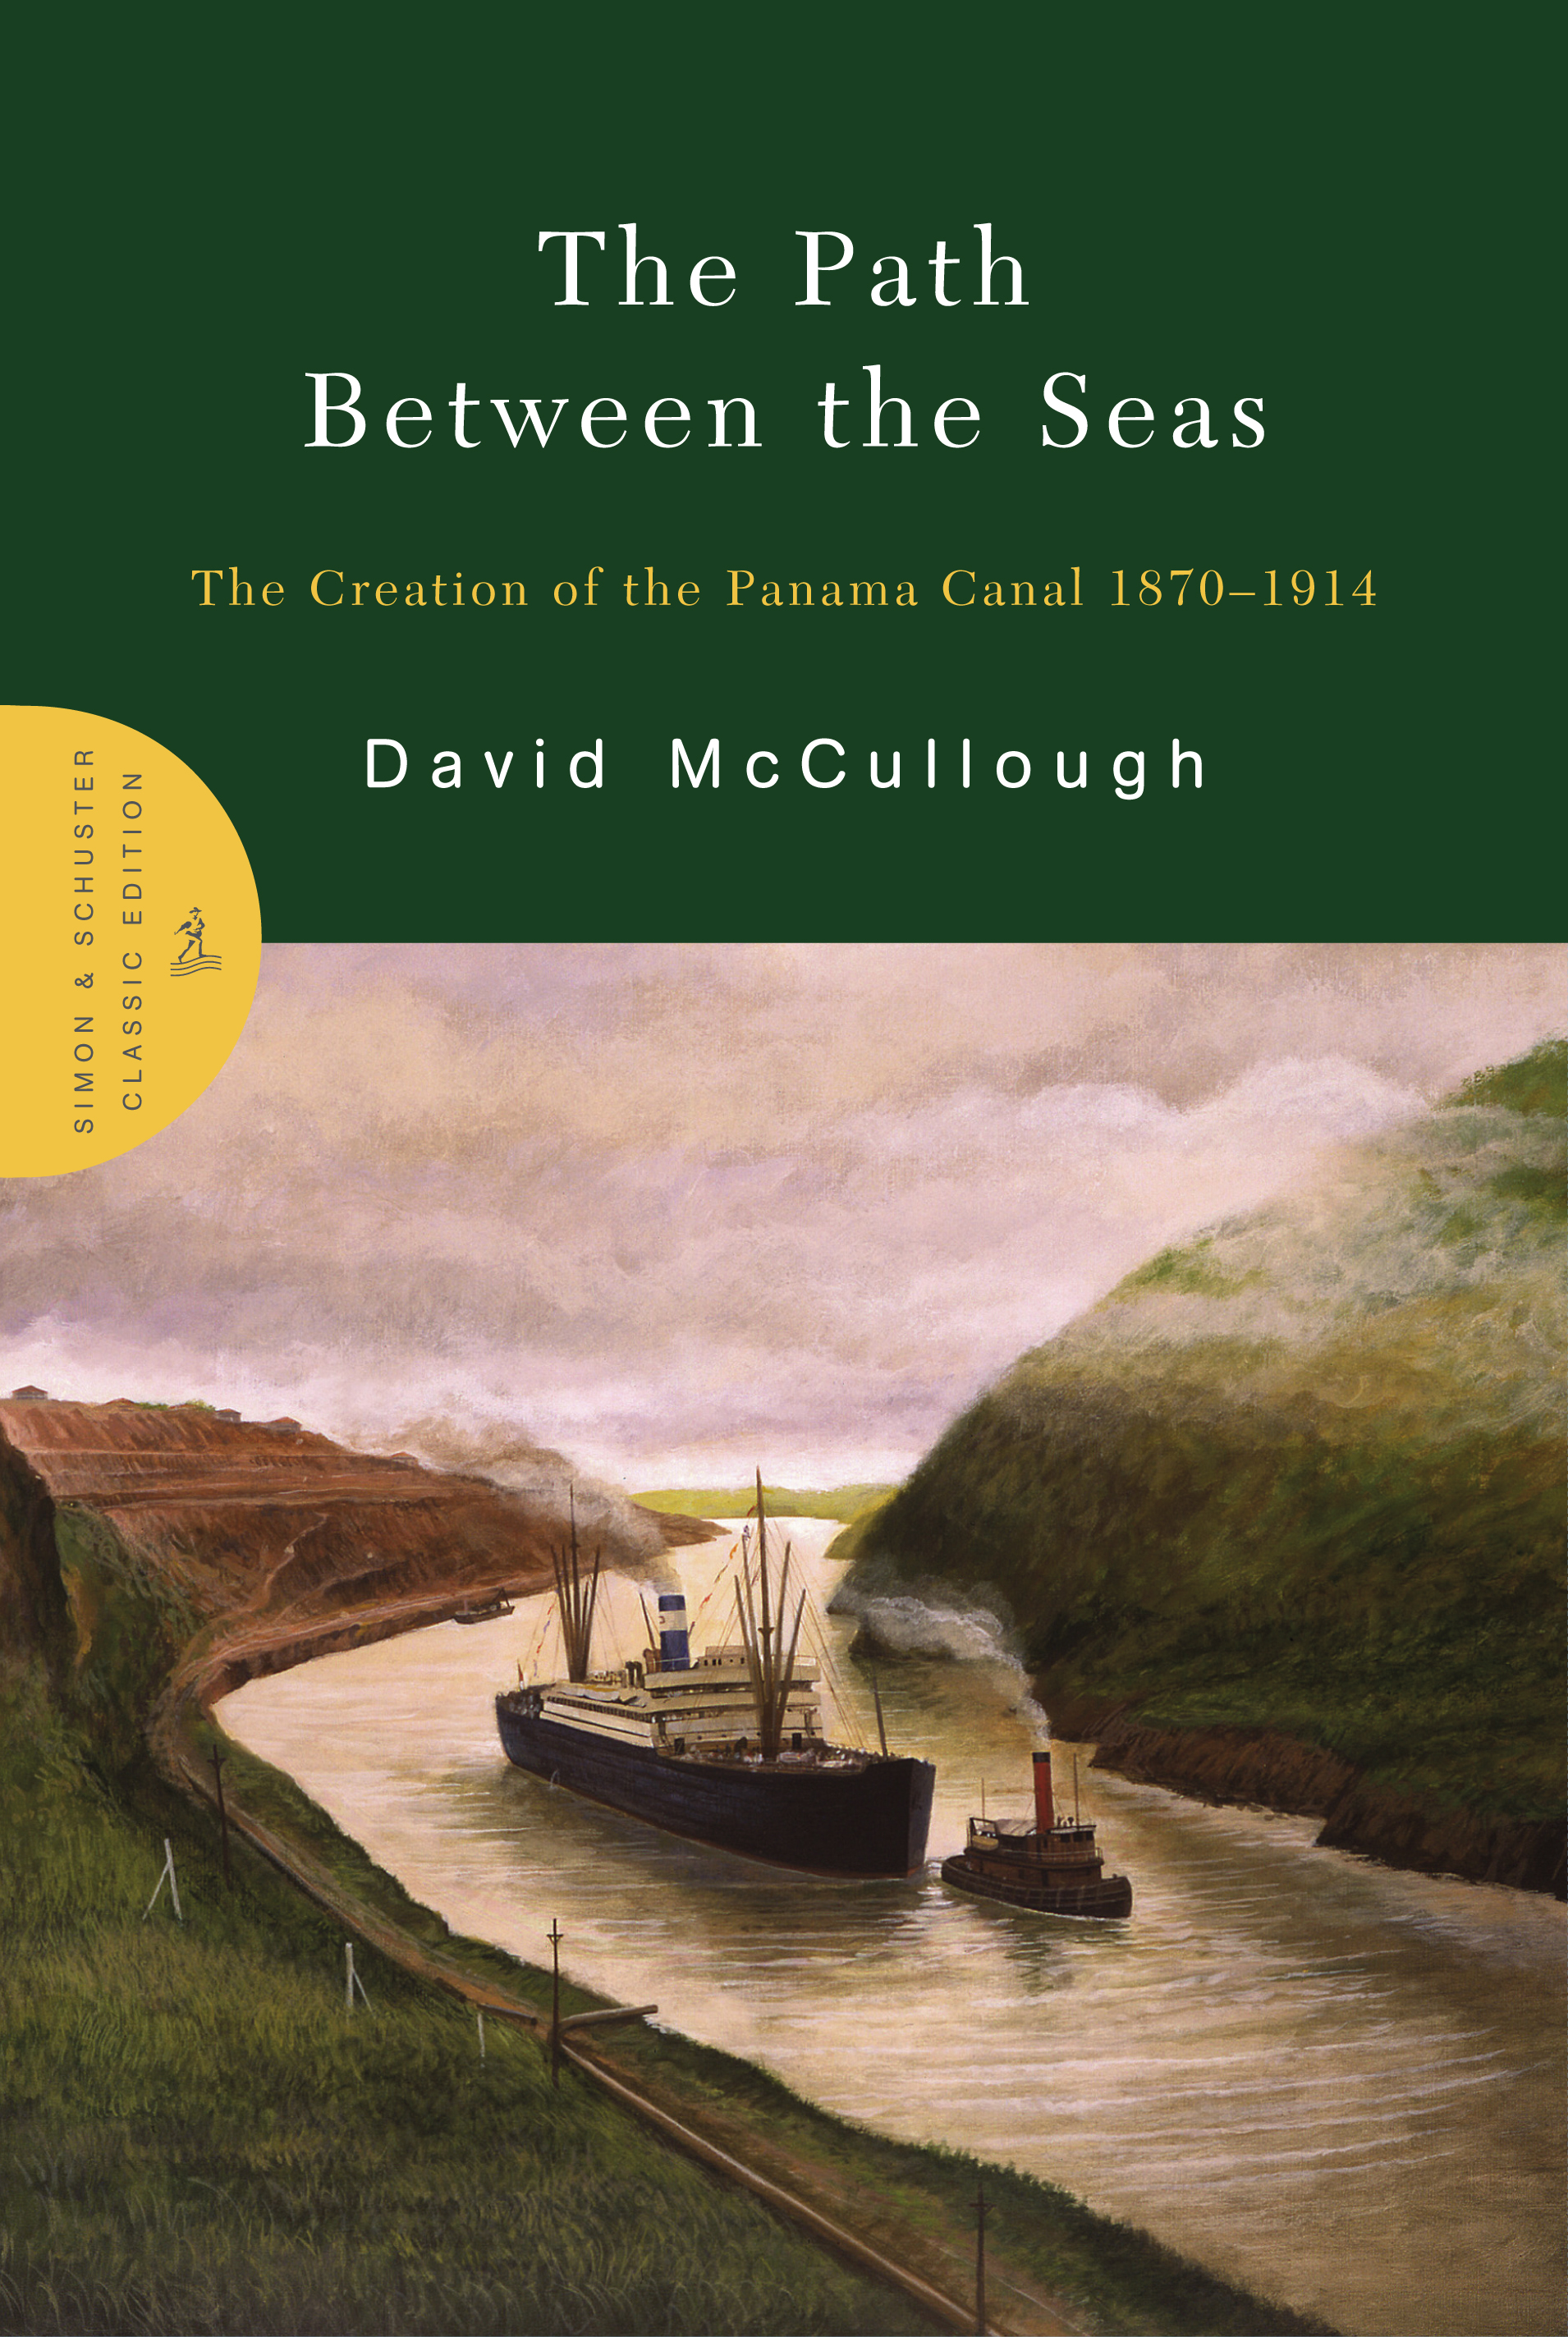 the path between the seas book by david mccullough official  the path between the seas book by david mccullough official publisher page simon schuster